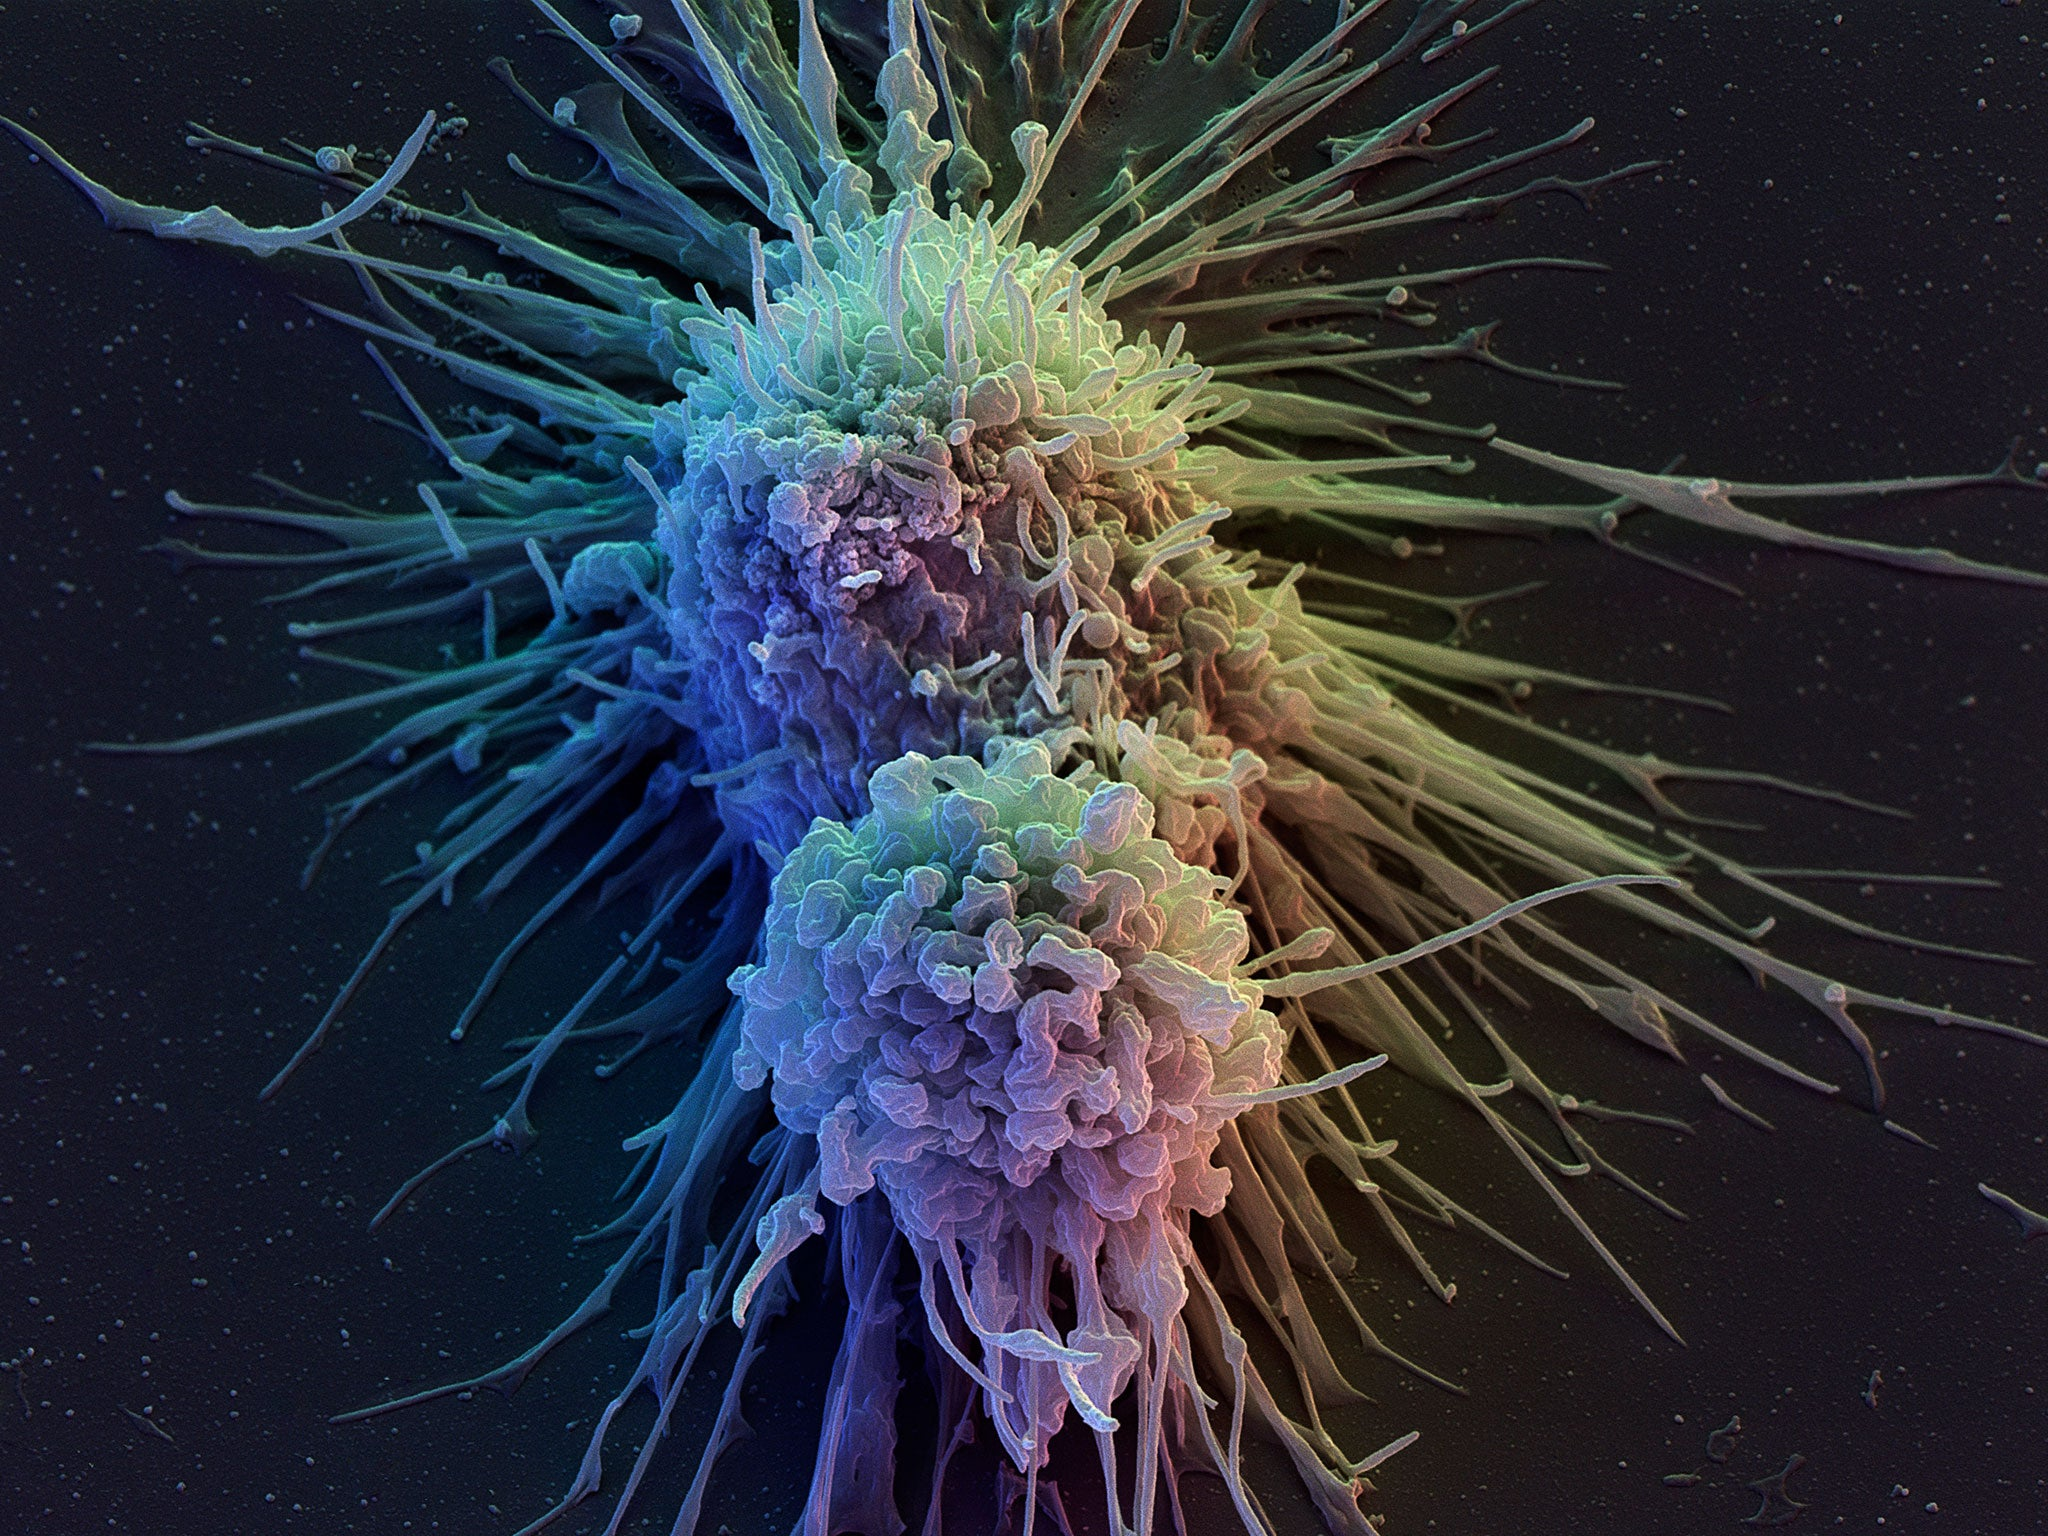 tcell therapy pioneering cancer treatment could protect